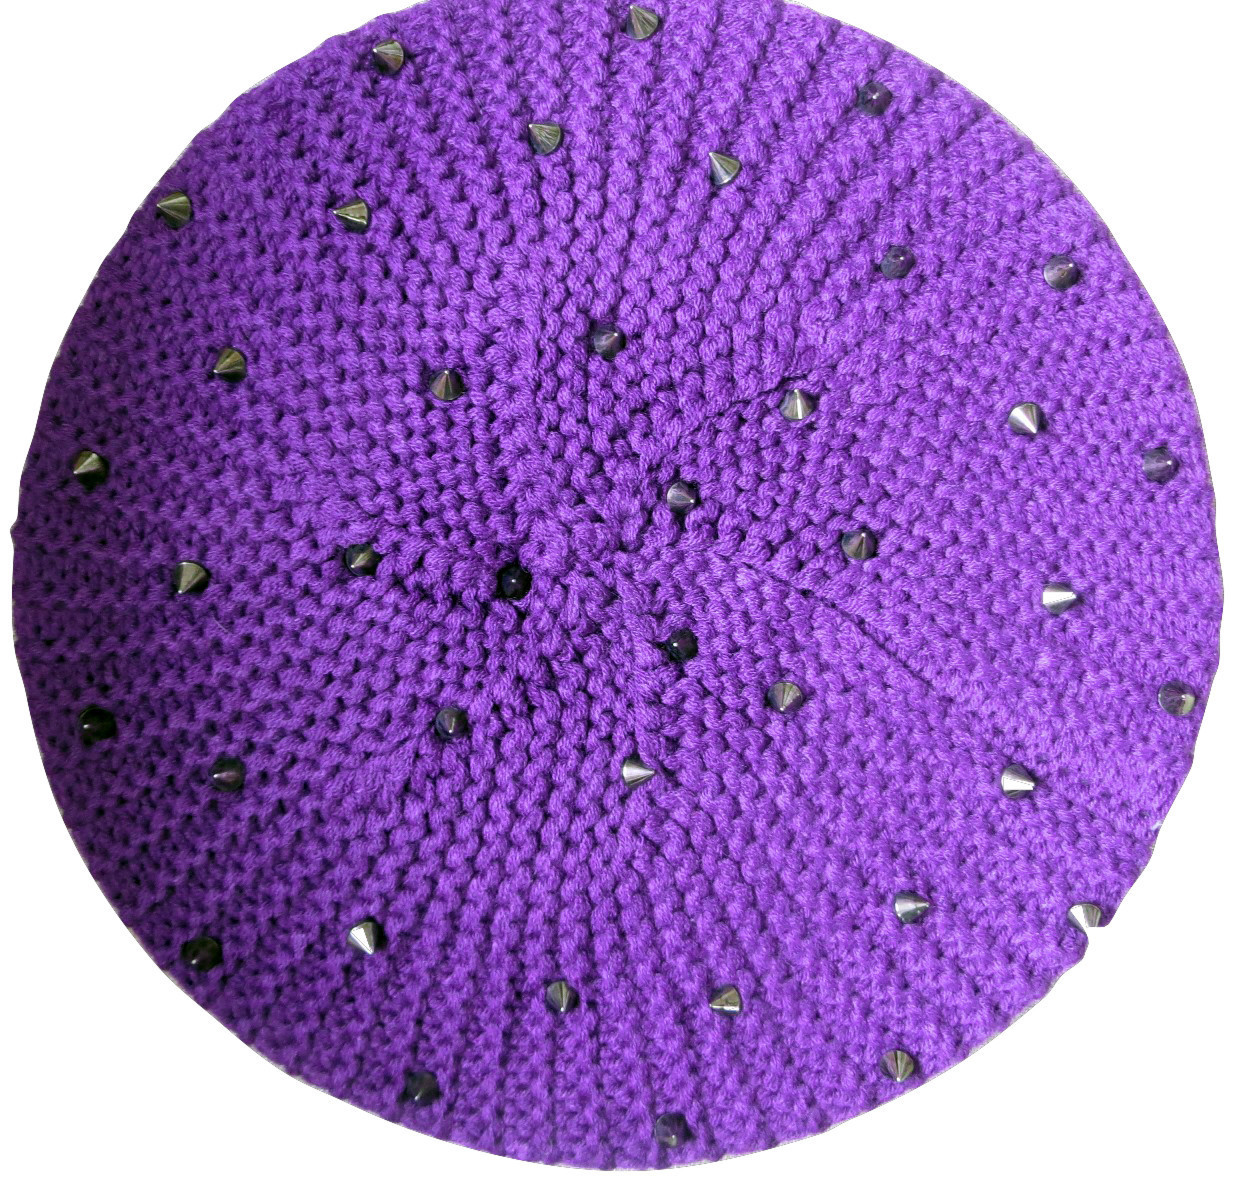 Purple beret with spikes